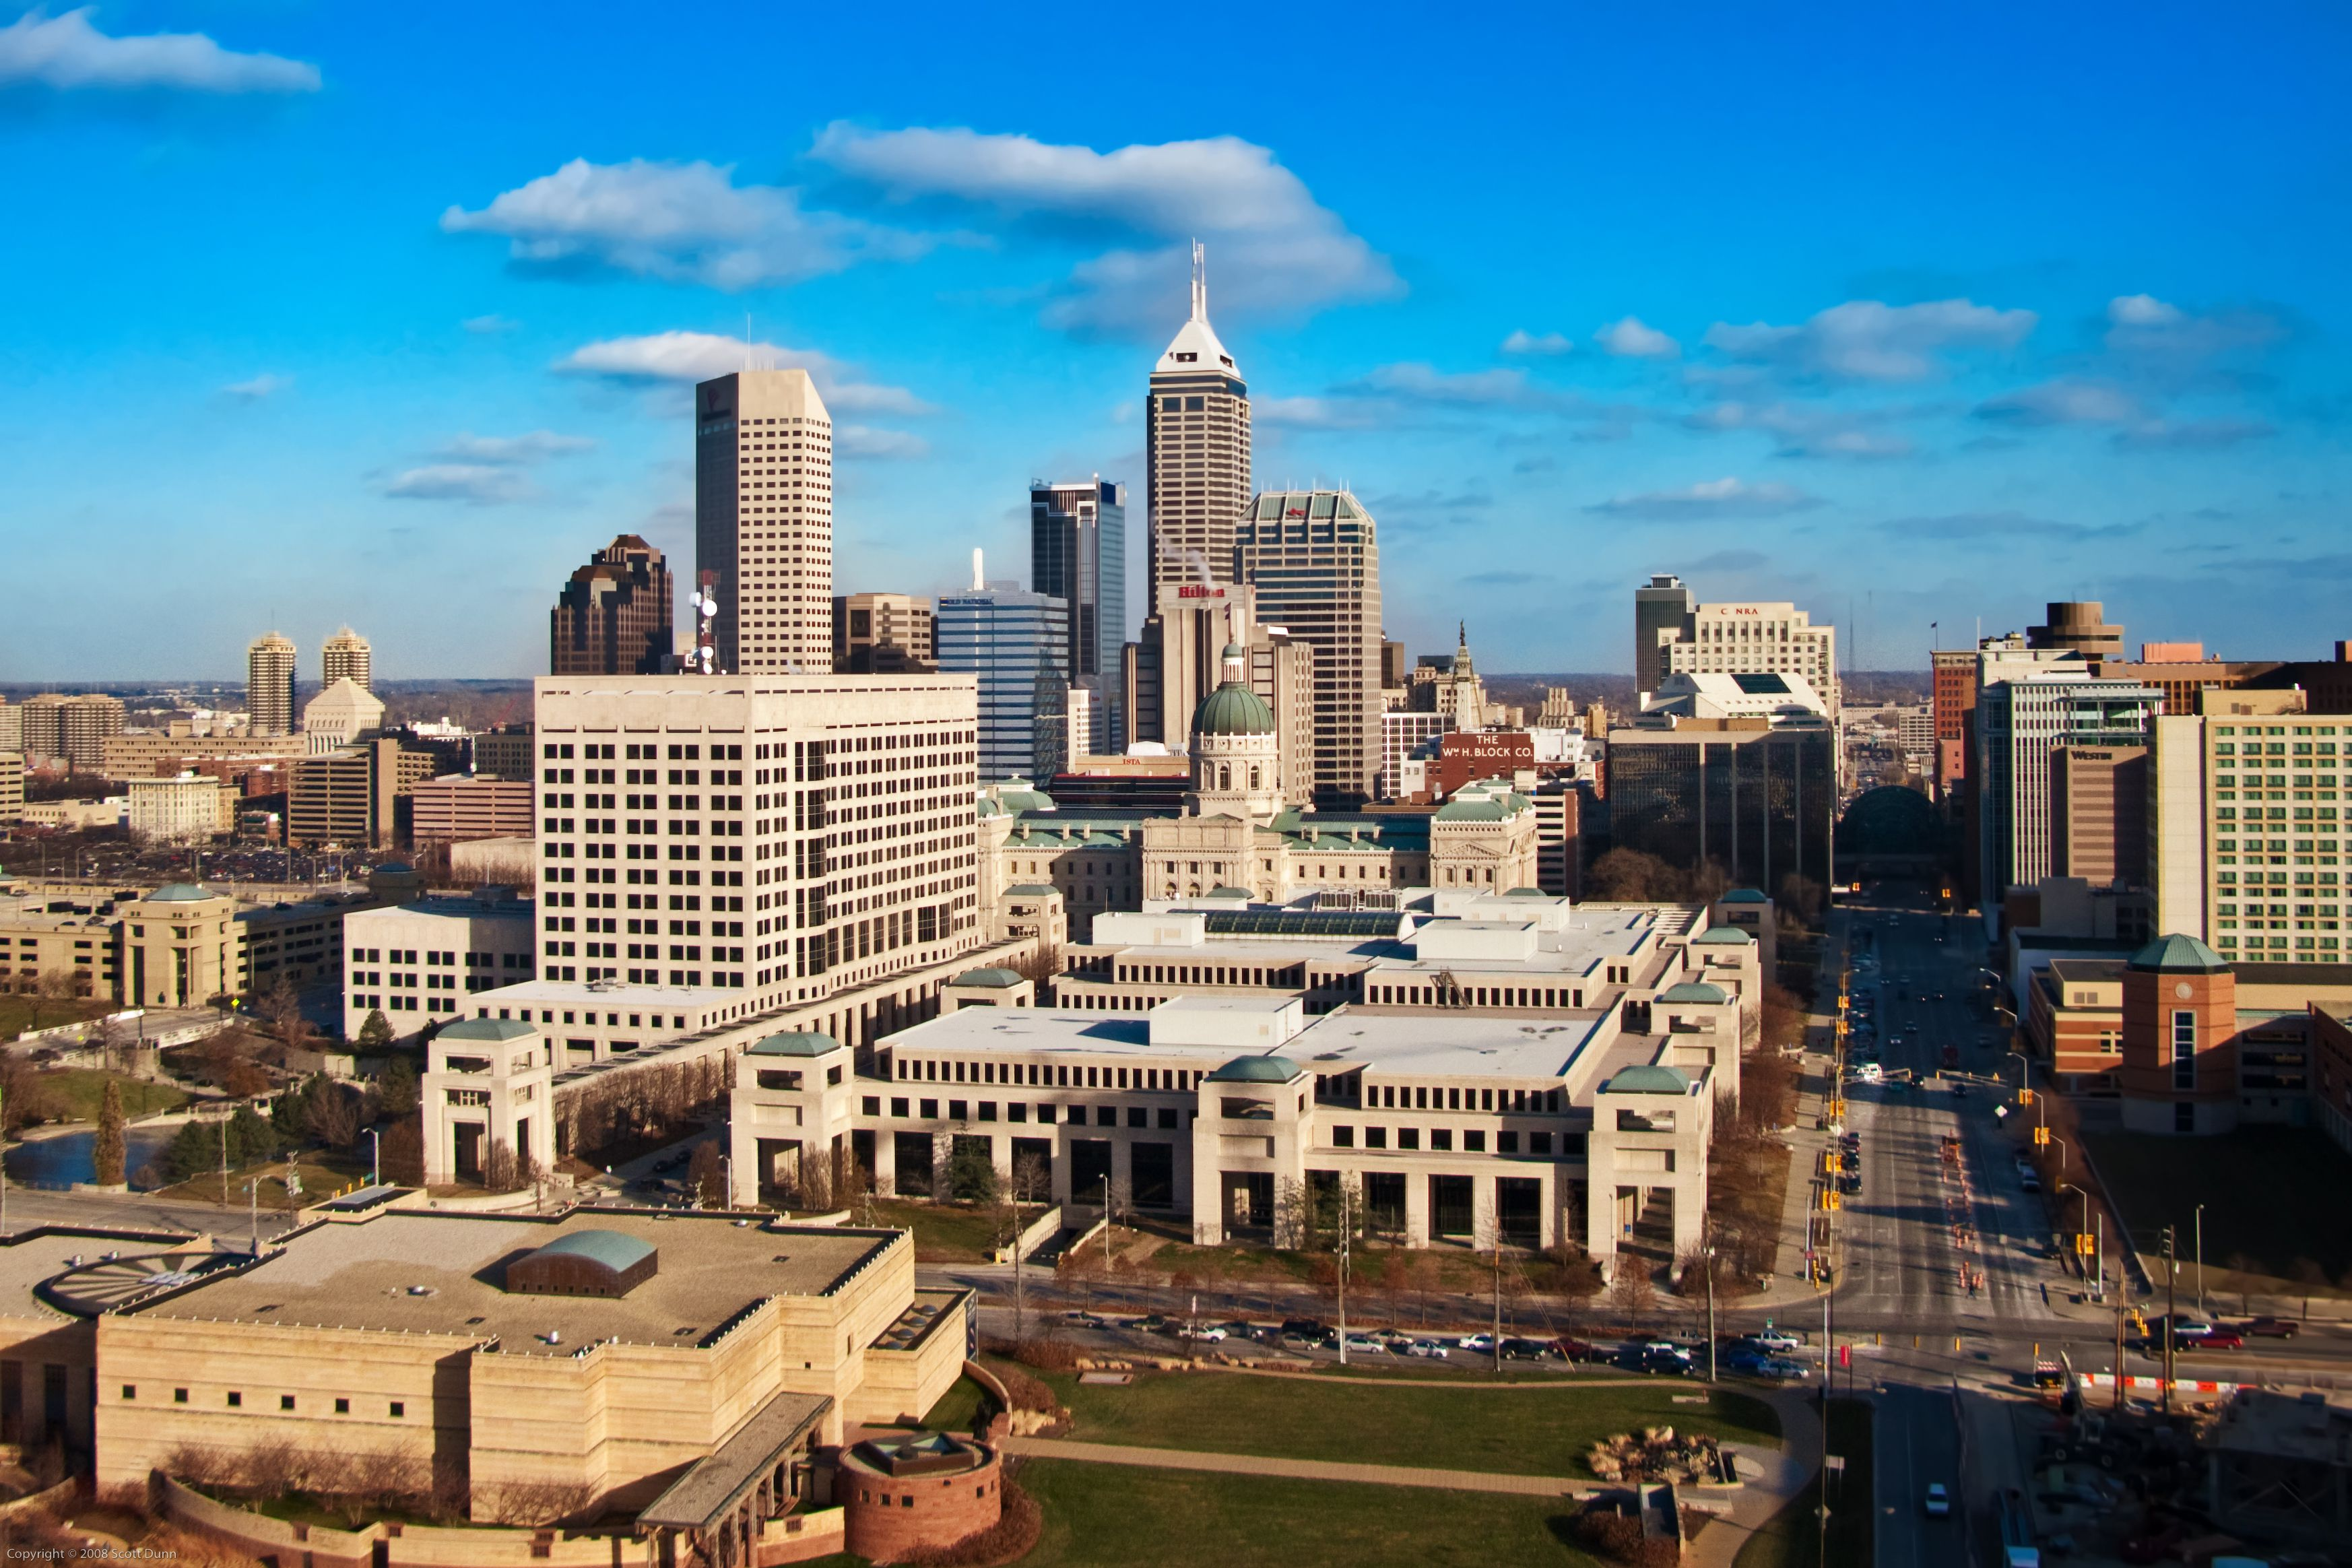 An Overview of Public Libraries in the Indianapolis Area